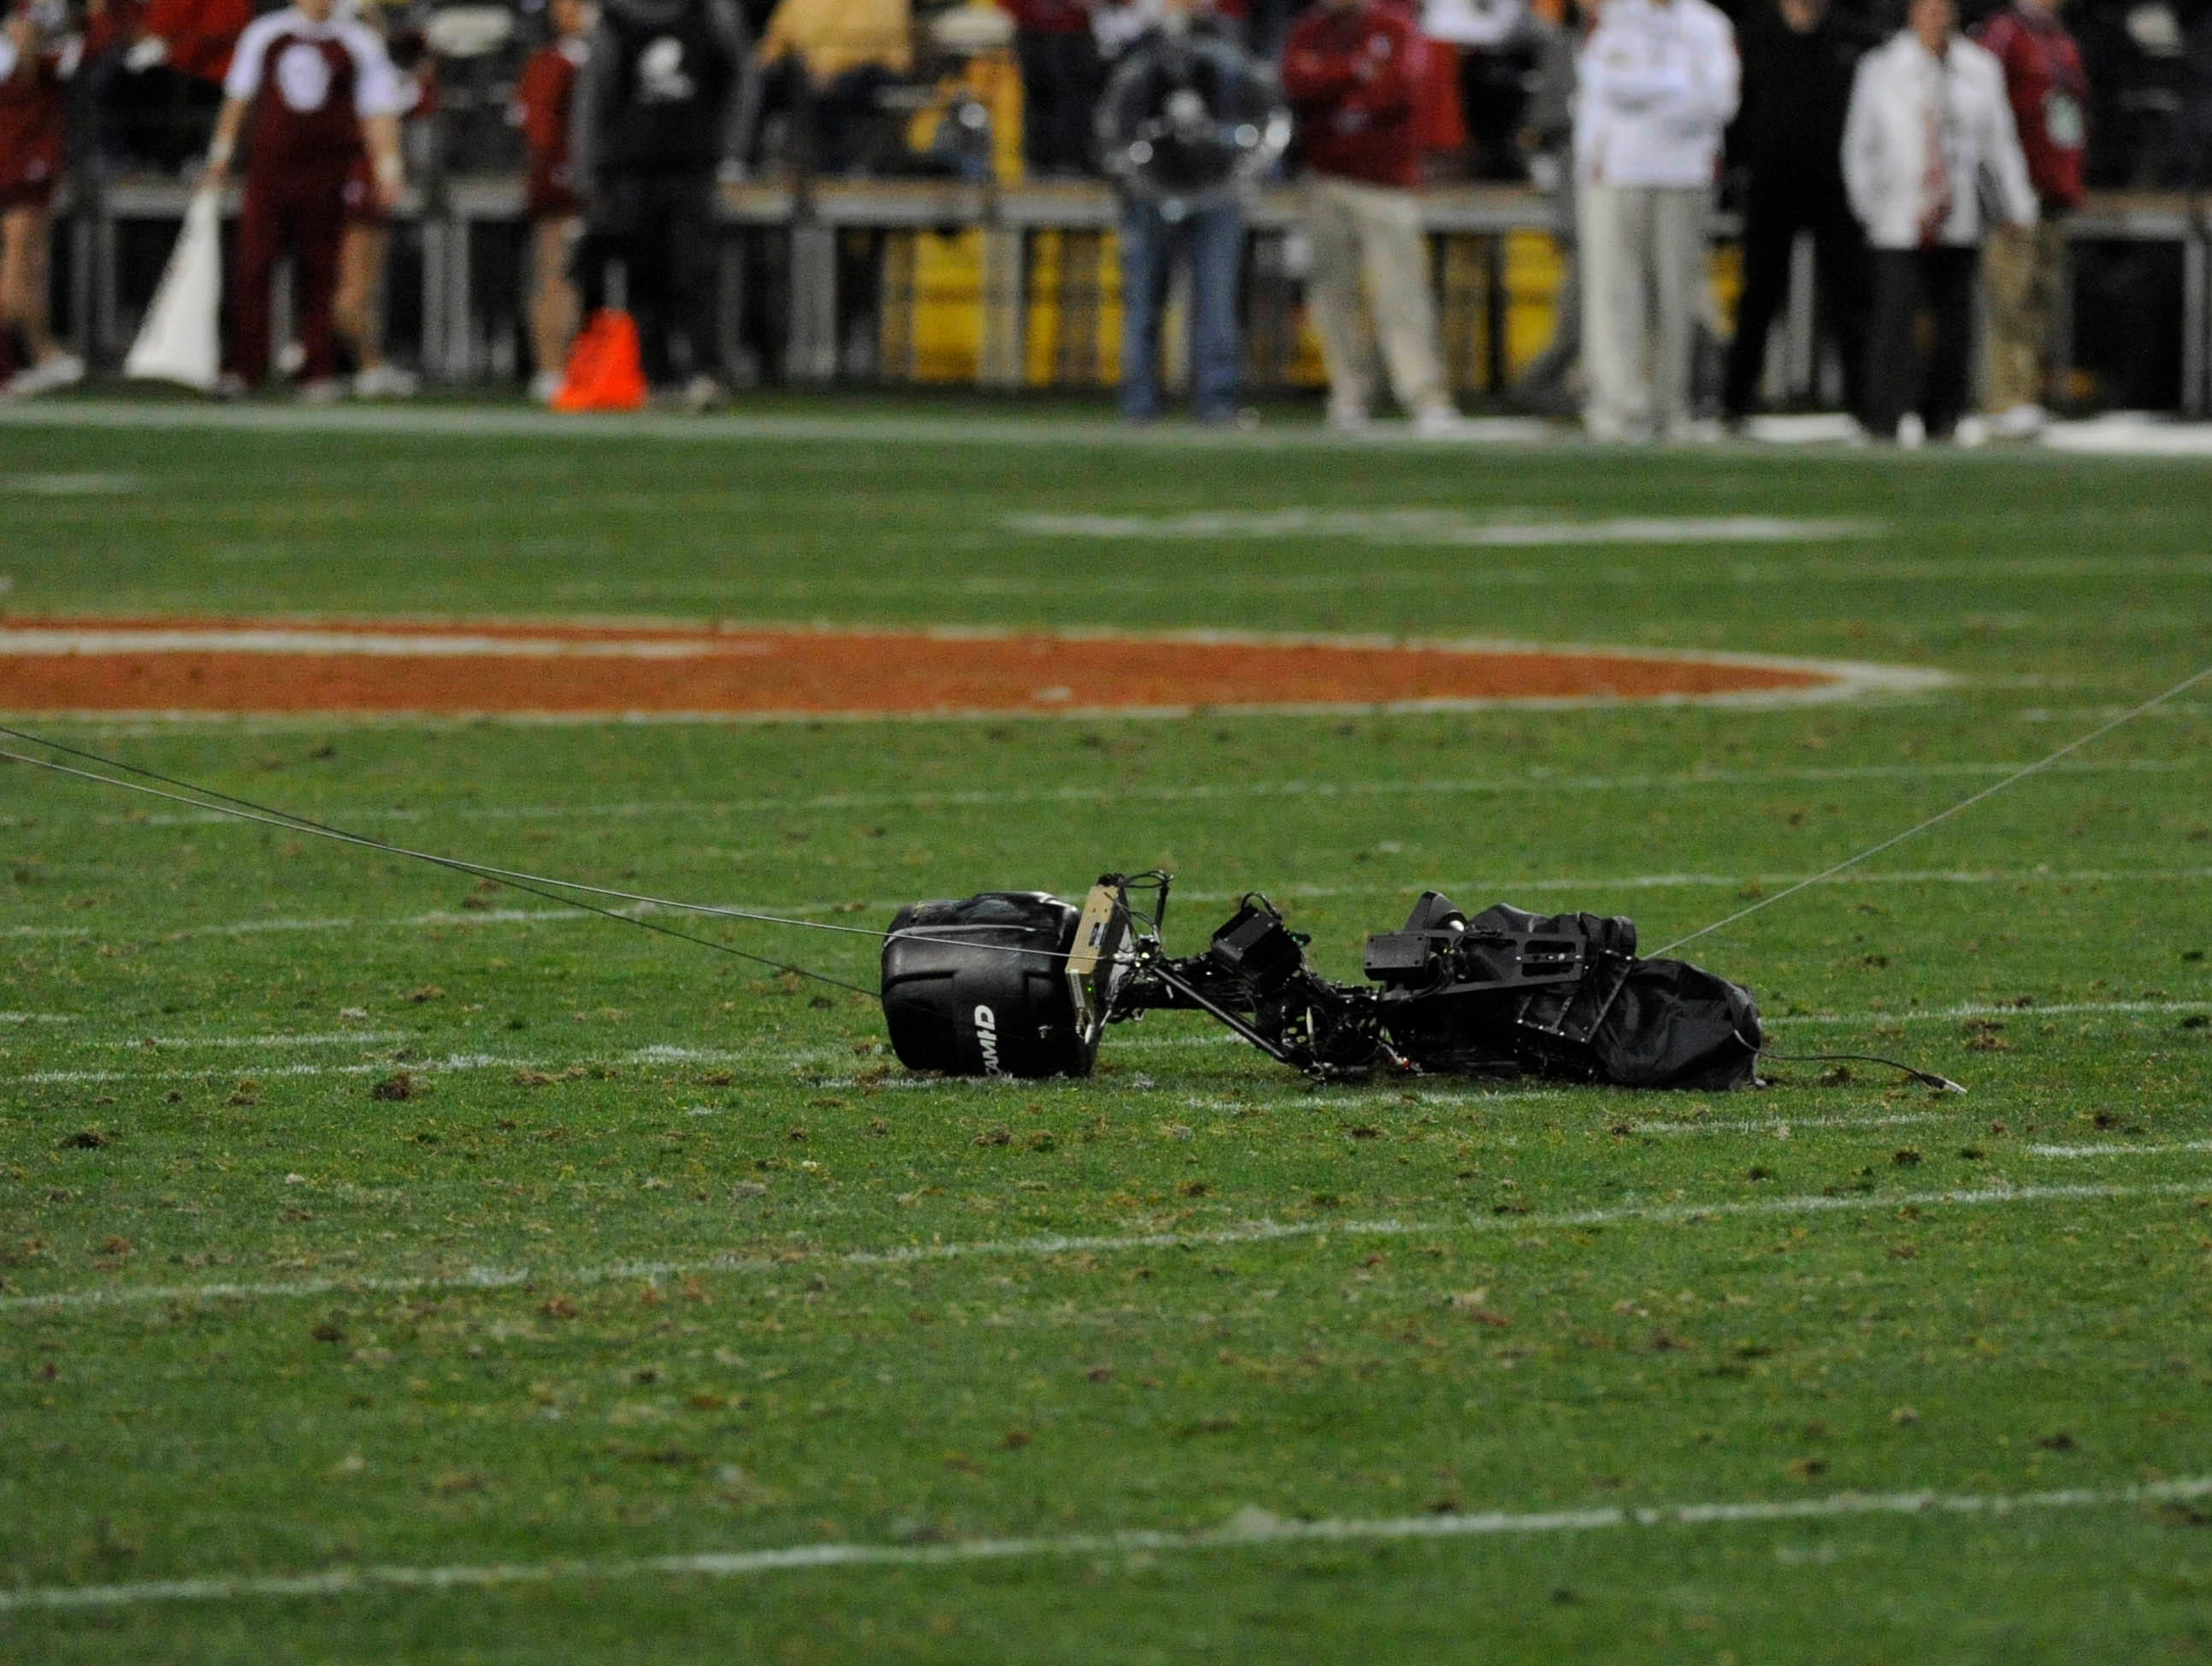 Dec 30, 2011; Tempe, AZ, USA; A fallen Skycam on the field during the second half of the 2011 Insight Bowl between Iowa Hawkeyes and Oklahoma Sooners at the Sun Devil Stadium. Mandatory Credit: Richard Mackson-USA TODAY Sports